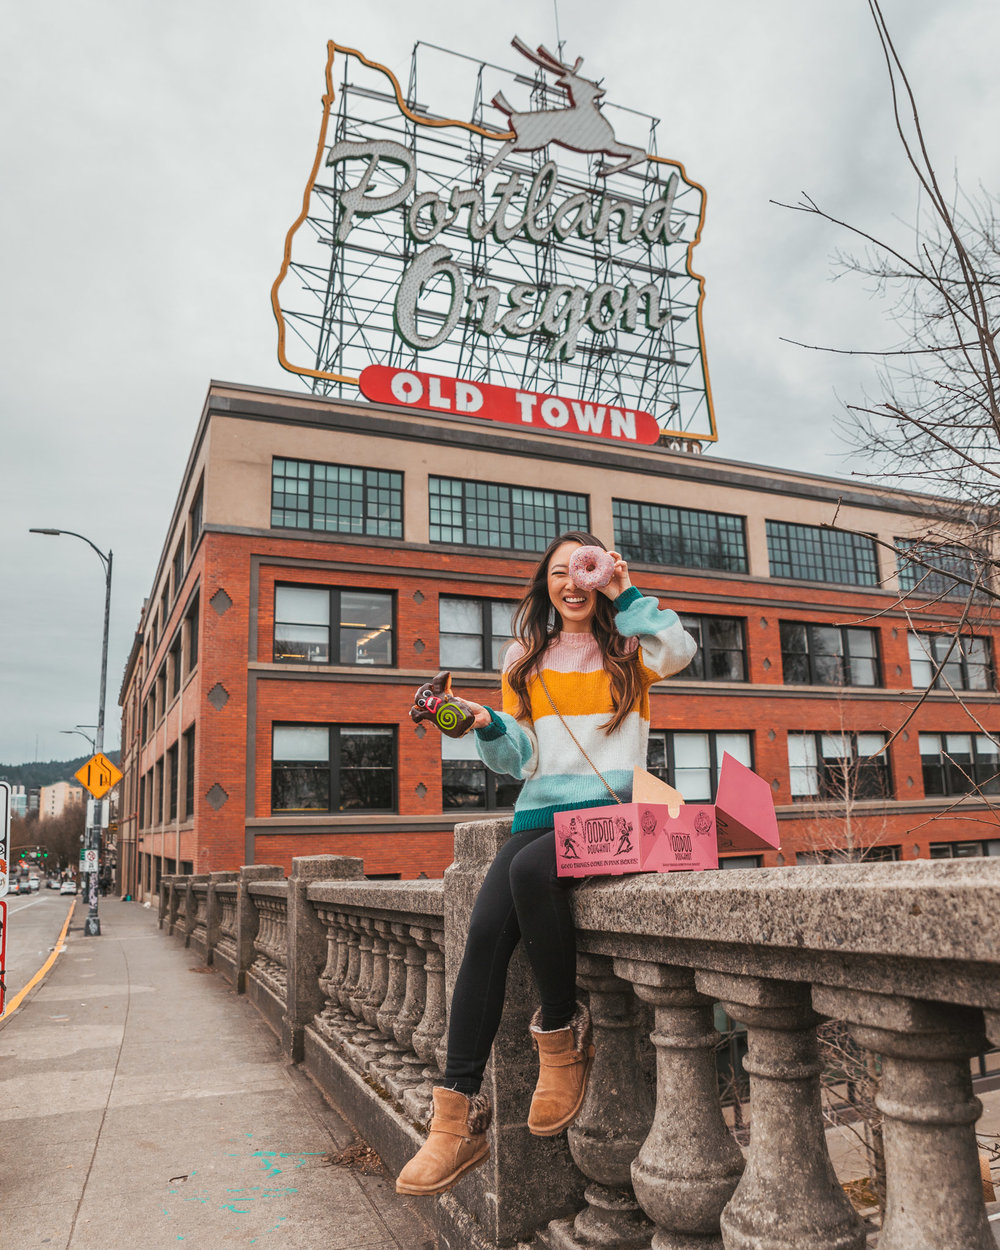 Historic Old Town Portland Sign // The Most Instagrammable Spots in Portland, Oregon // #readysetjetset #portland #oregon #pdx #pnw #blogpost #photoguide